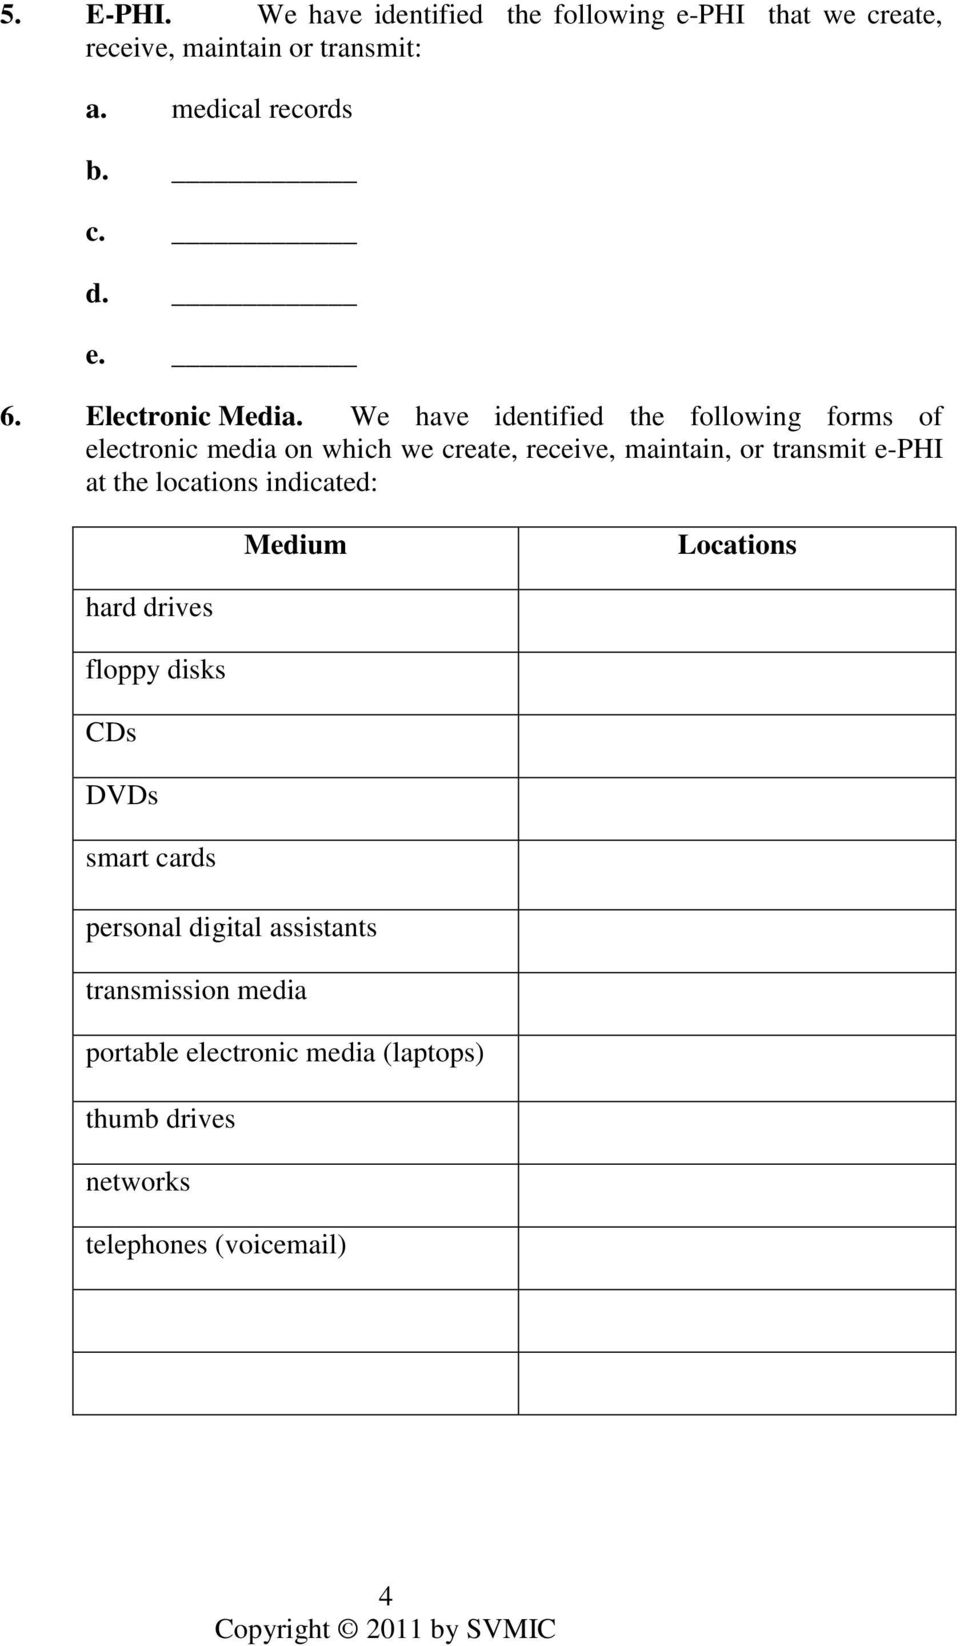 We have identified the following forms of electronic media on which we create, receive, maintain, or transmit e-phi at